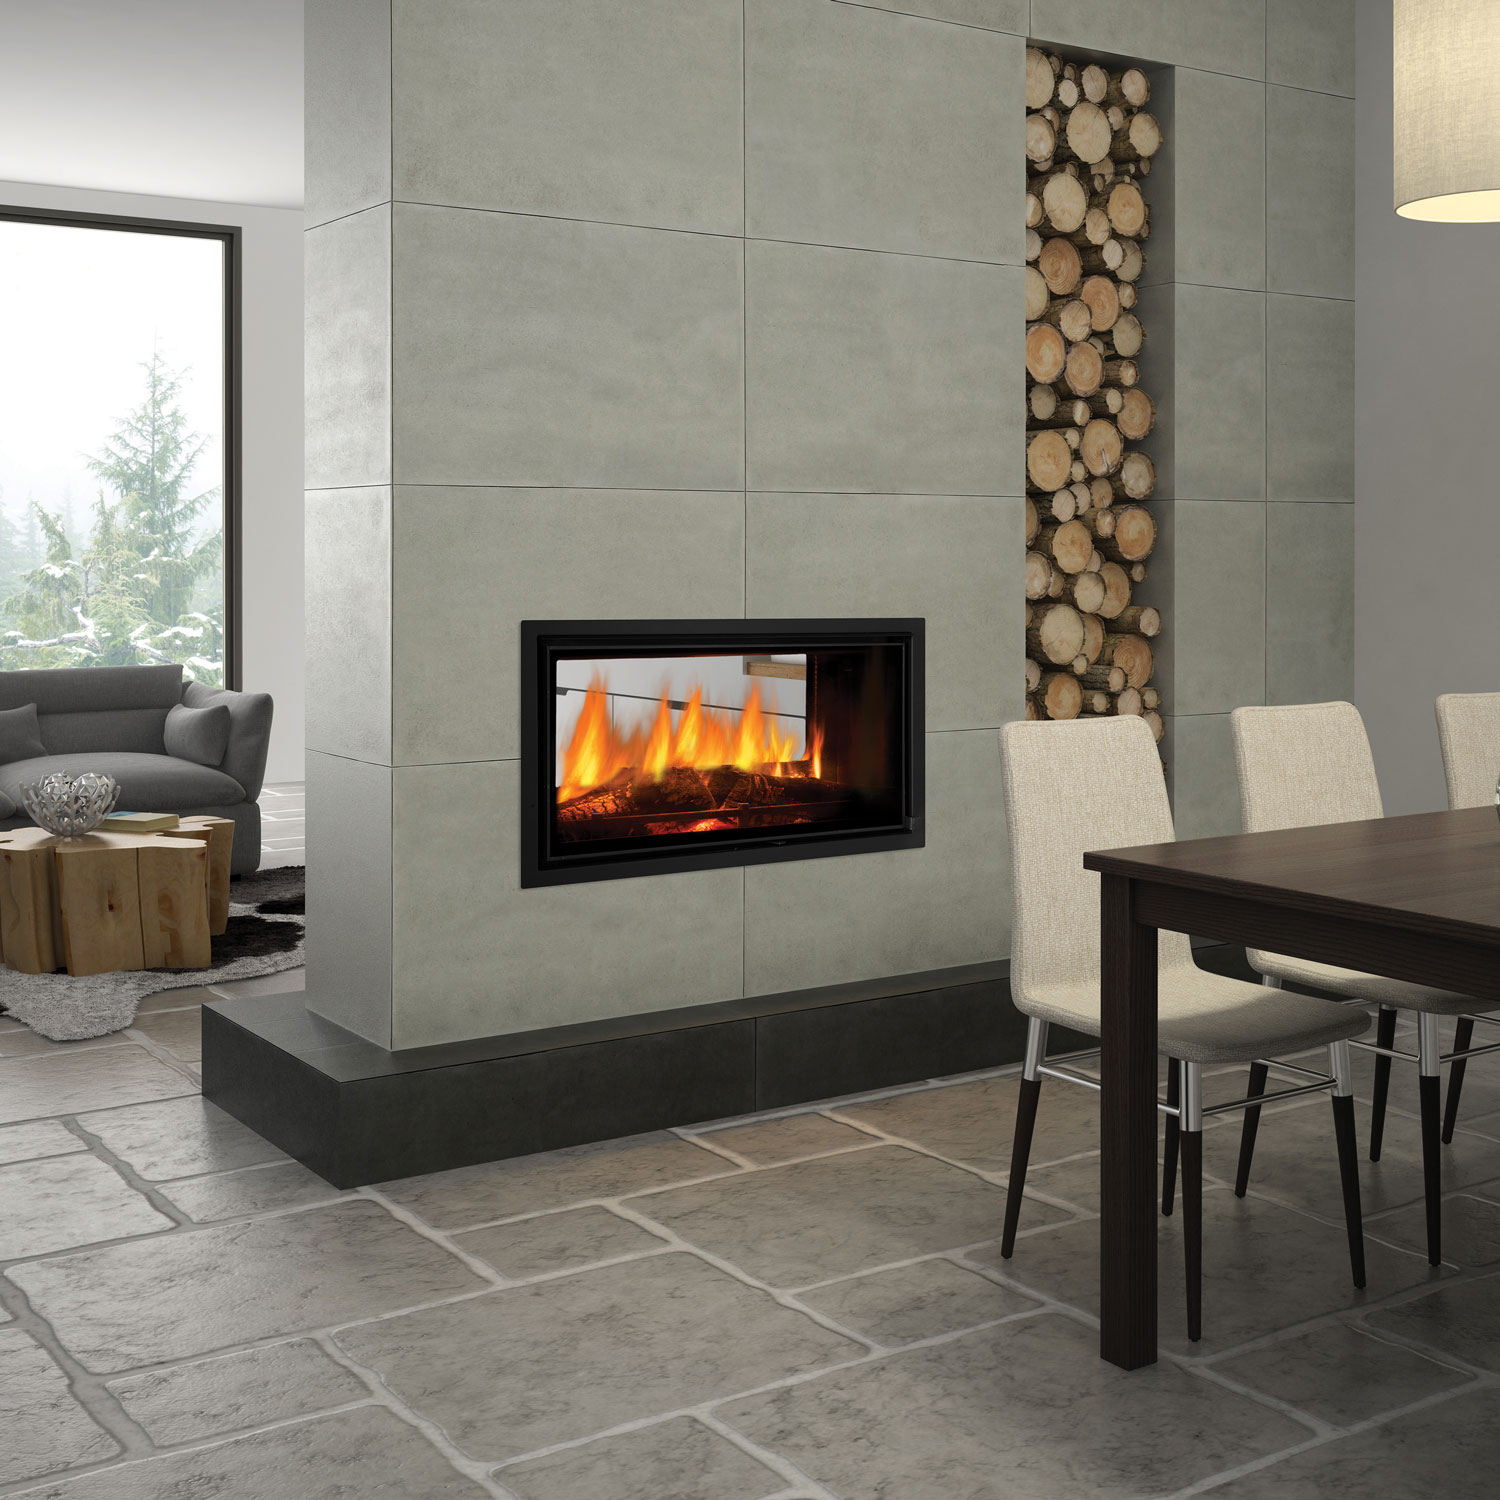 Regency Mansfield see through double-sided wood heater